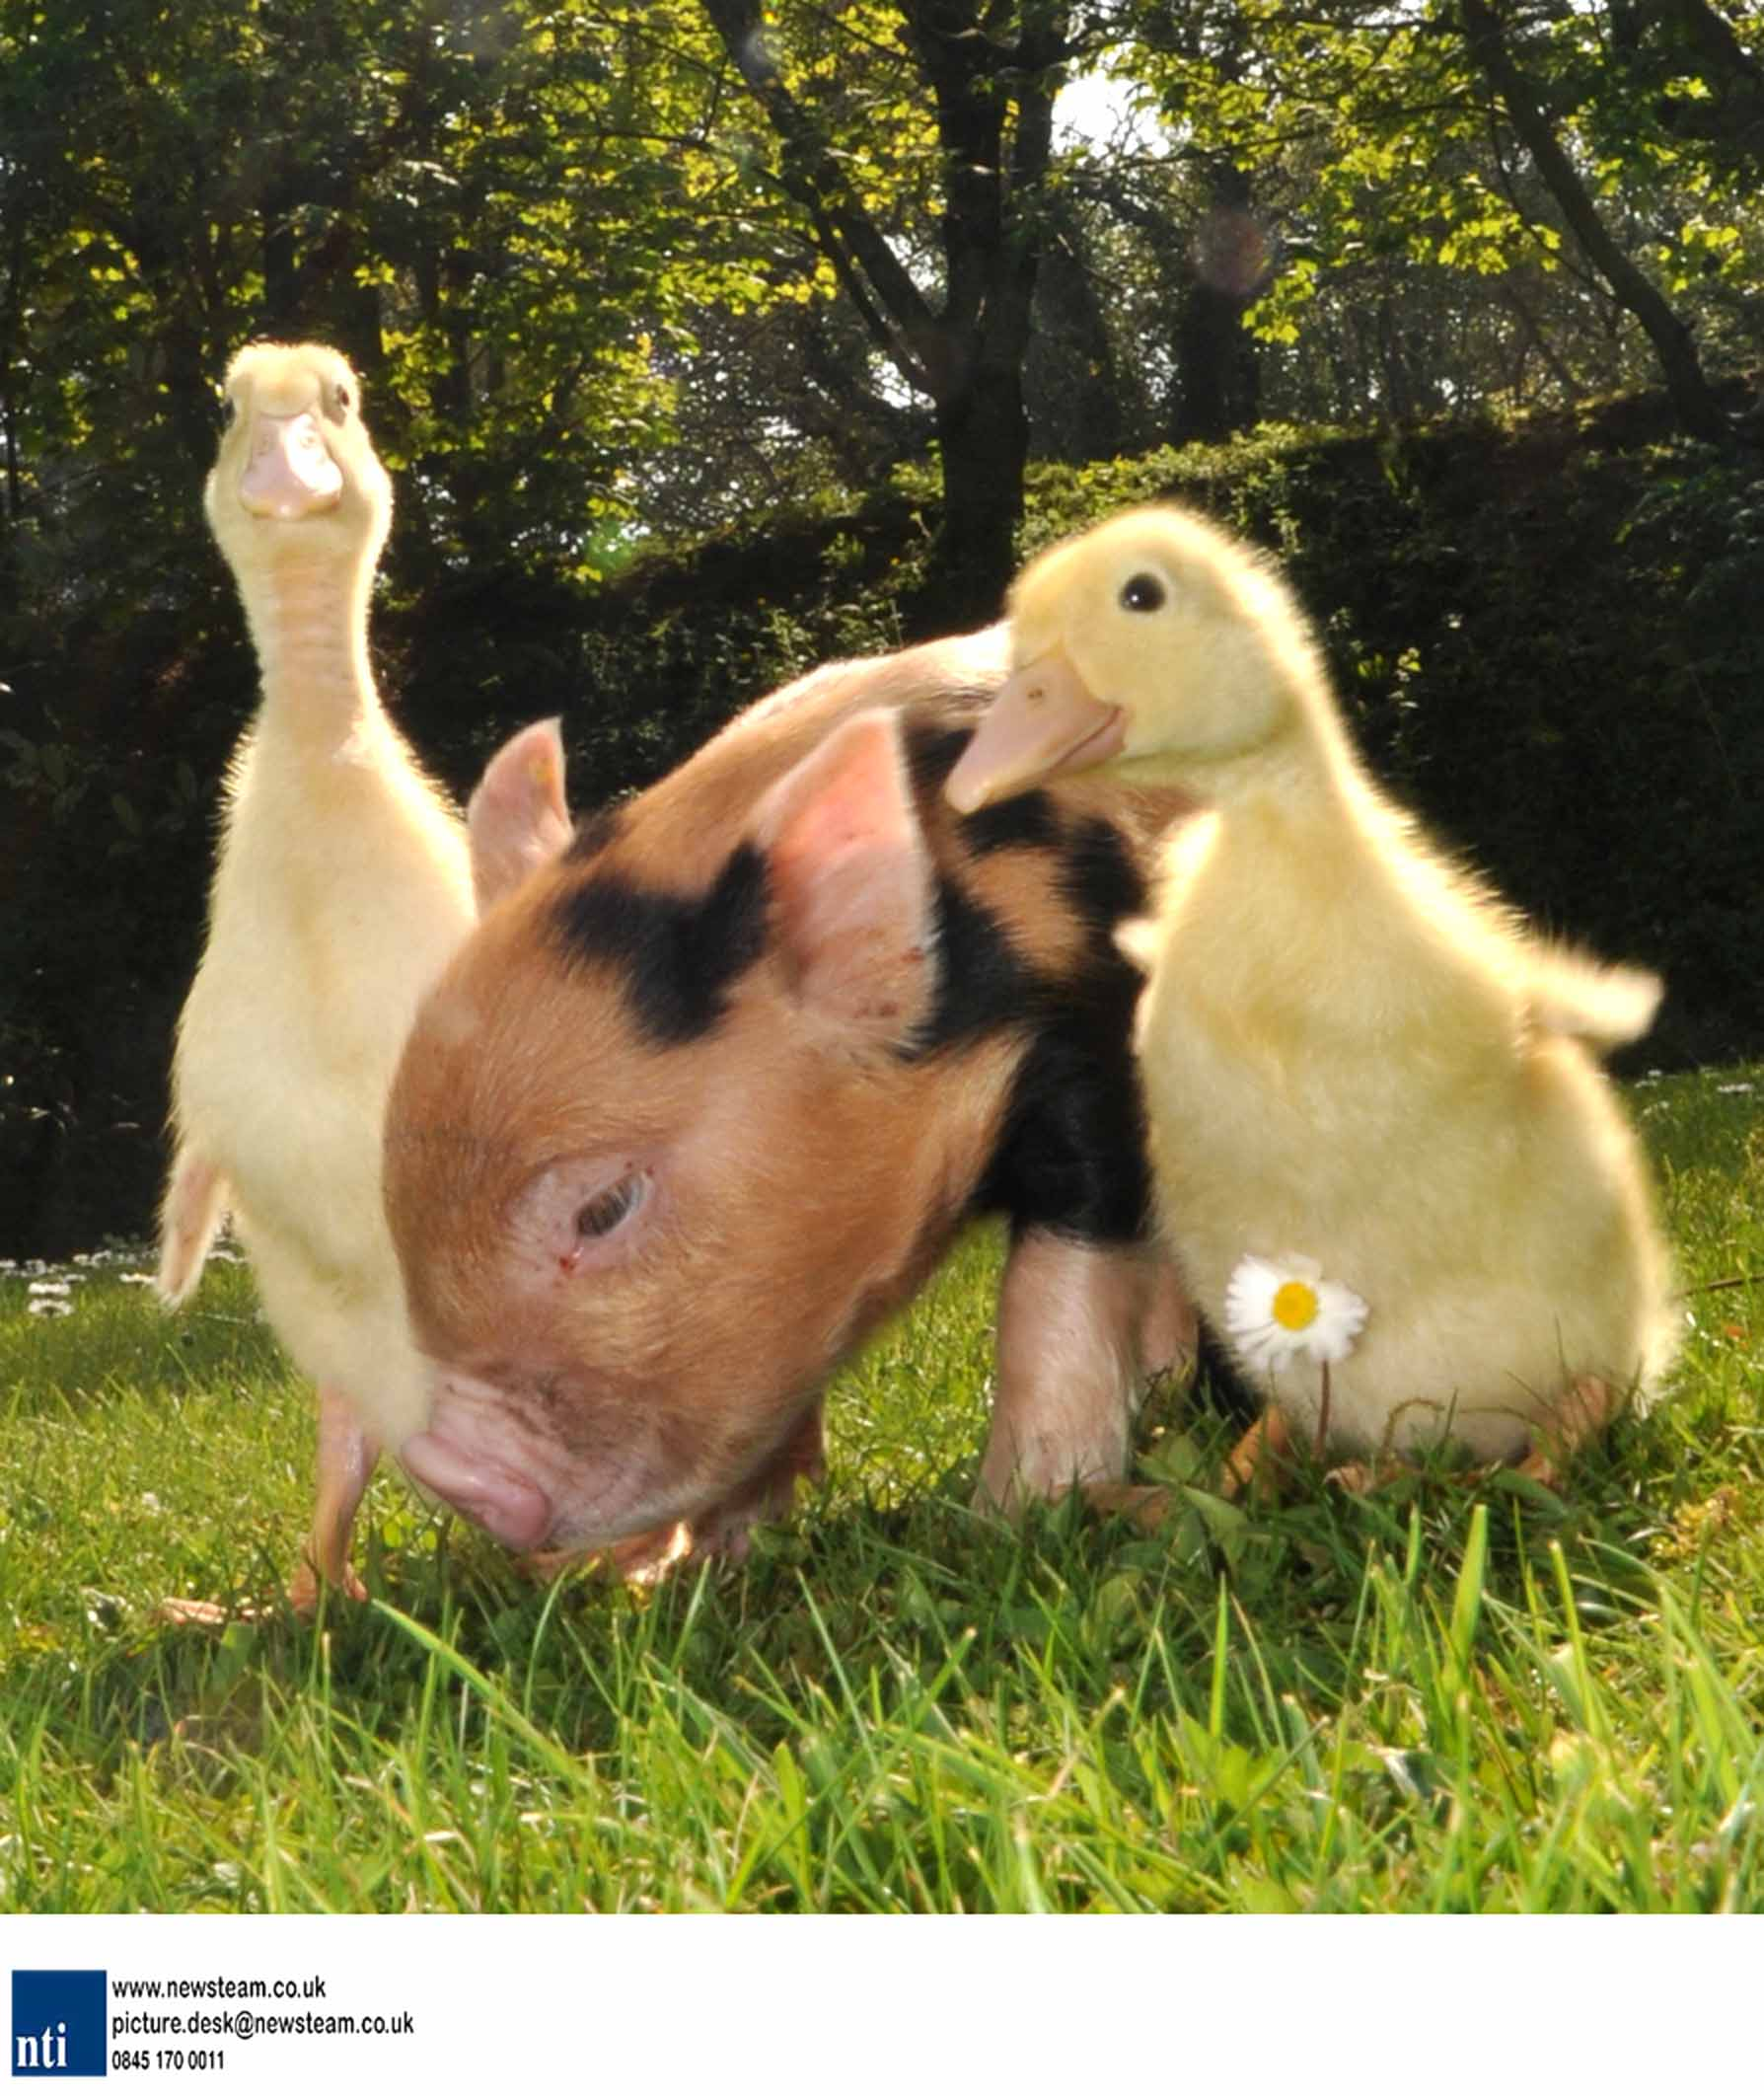 Pig that thinks its a duck